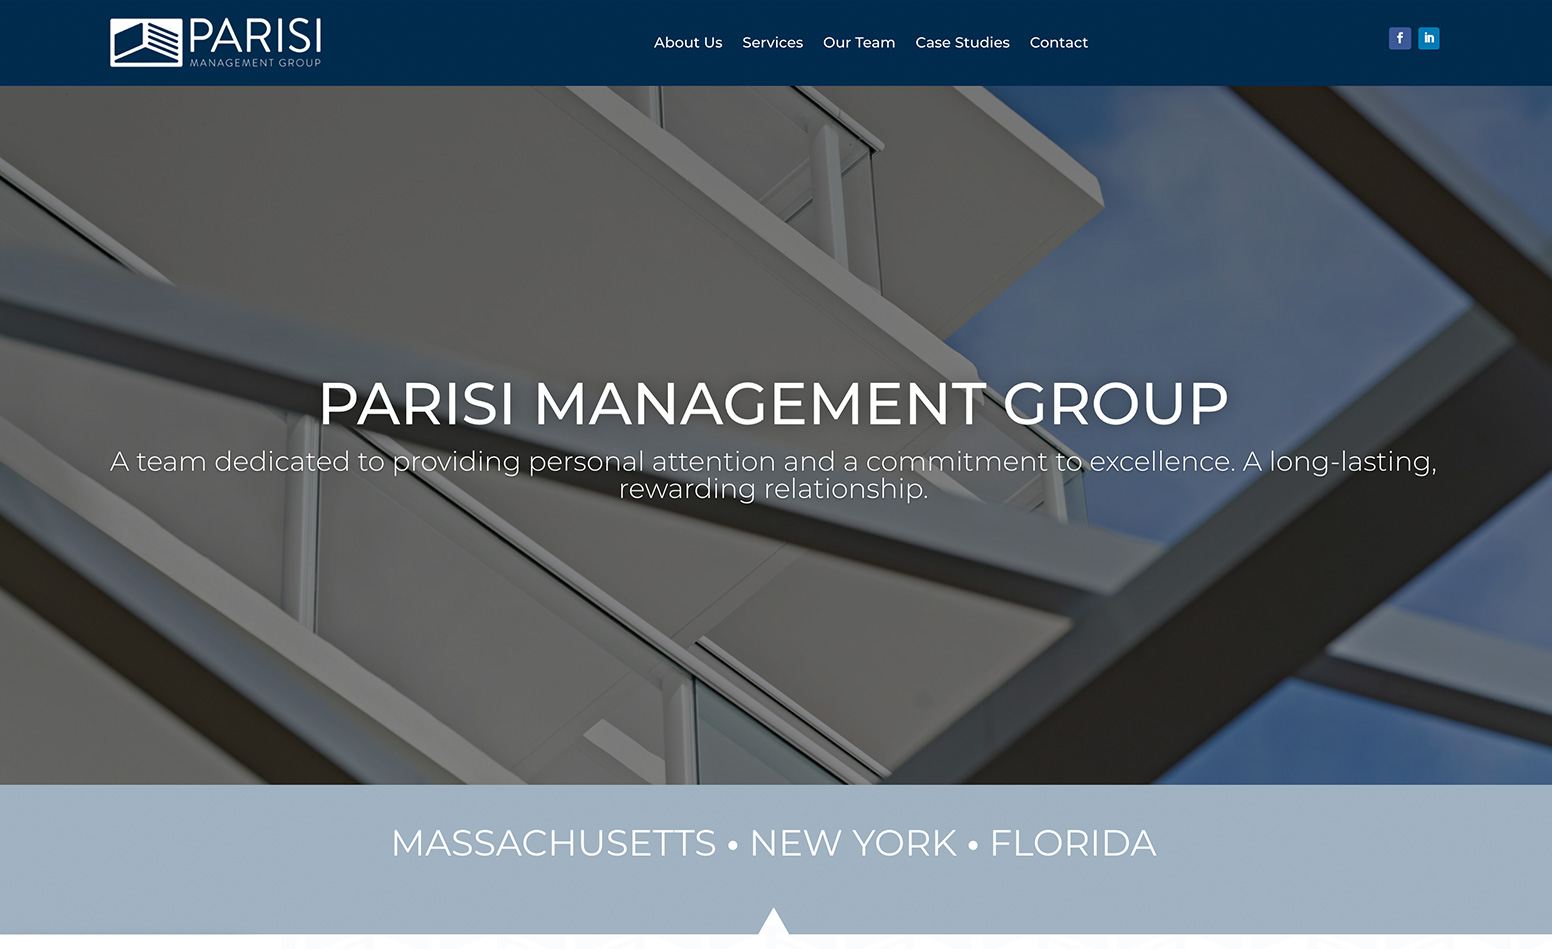 Parisi Management Group Website, Custom Website Design Western MA, Website Development Northern CT, Marketing Agency Massachusetts